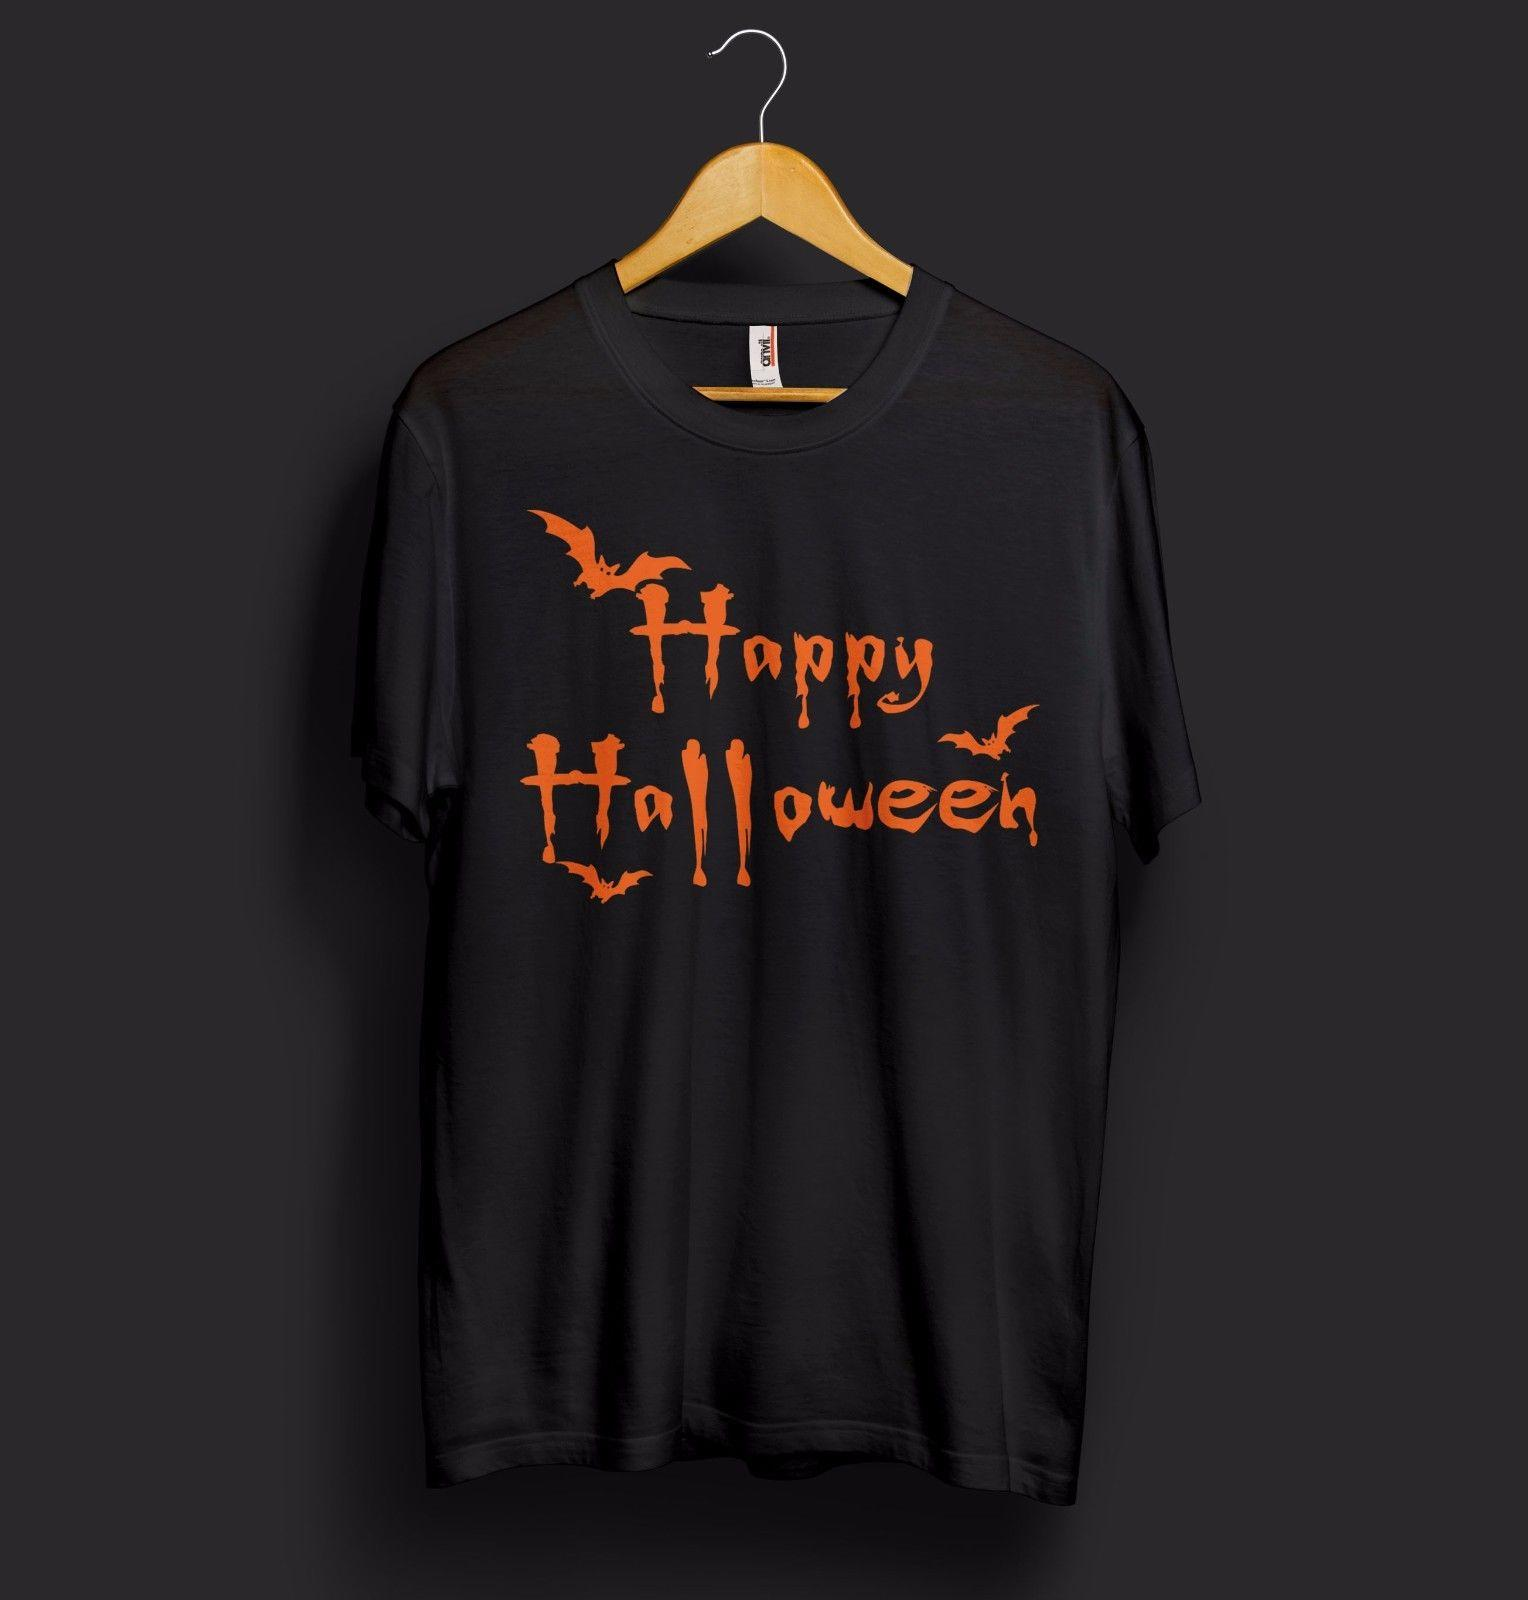 dcd27c24 Classic Happy Halloween T Shirt Top Trick Or Treat Scary Night Bats  Pumpkins Funniest T Shirts Mens Funny T Shirts From Notkillape, $11.01|  DHgate.Com